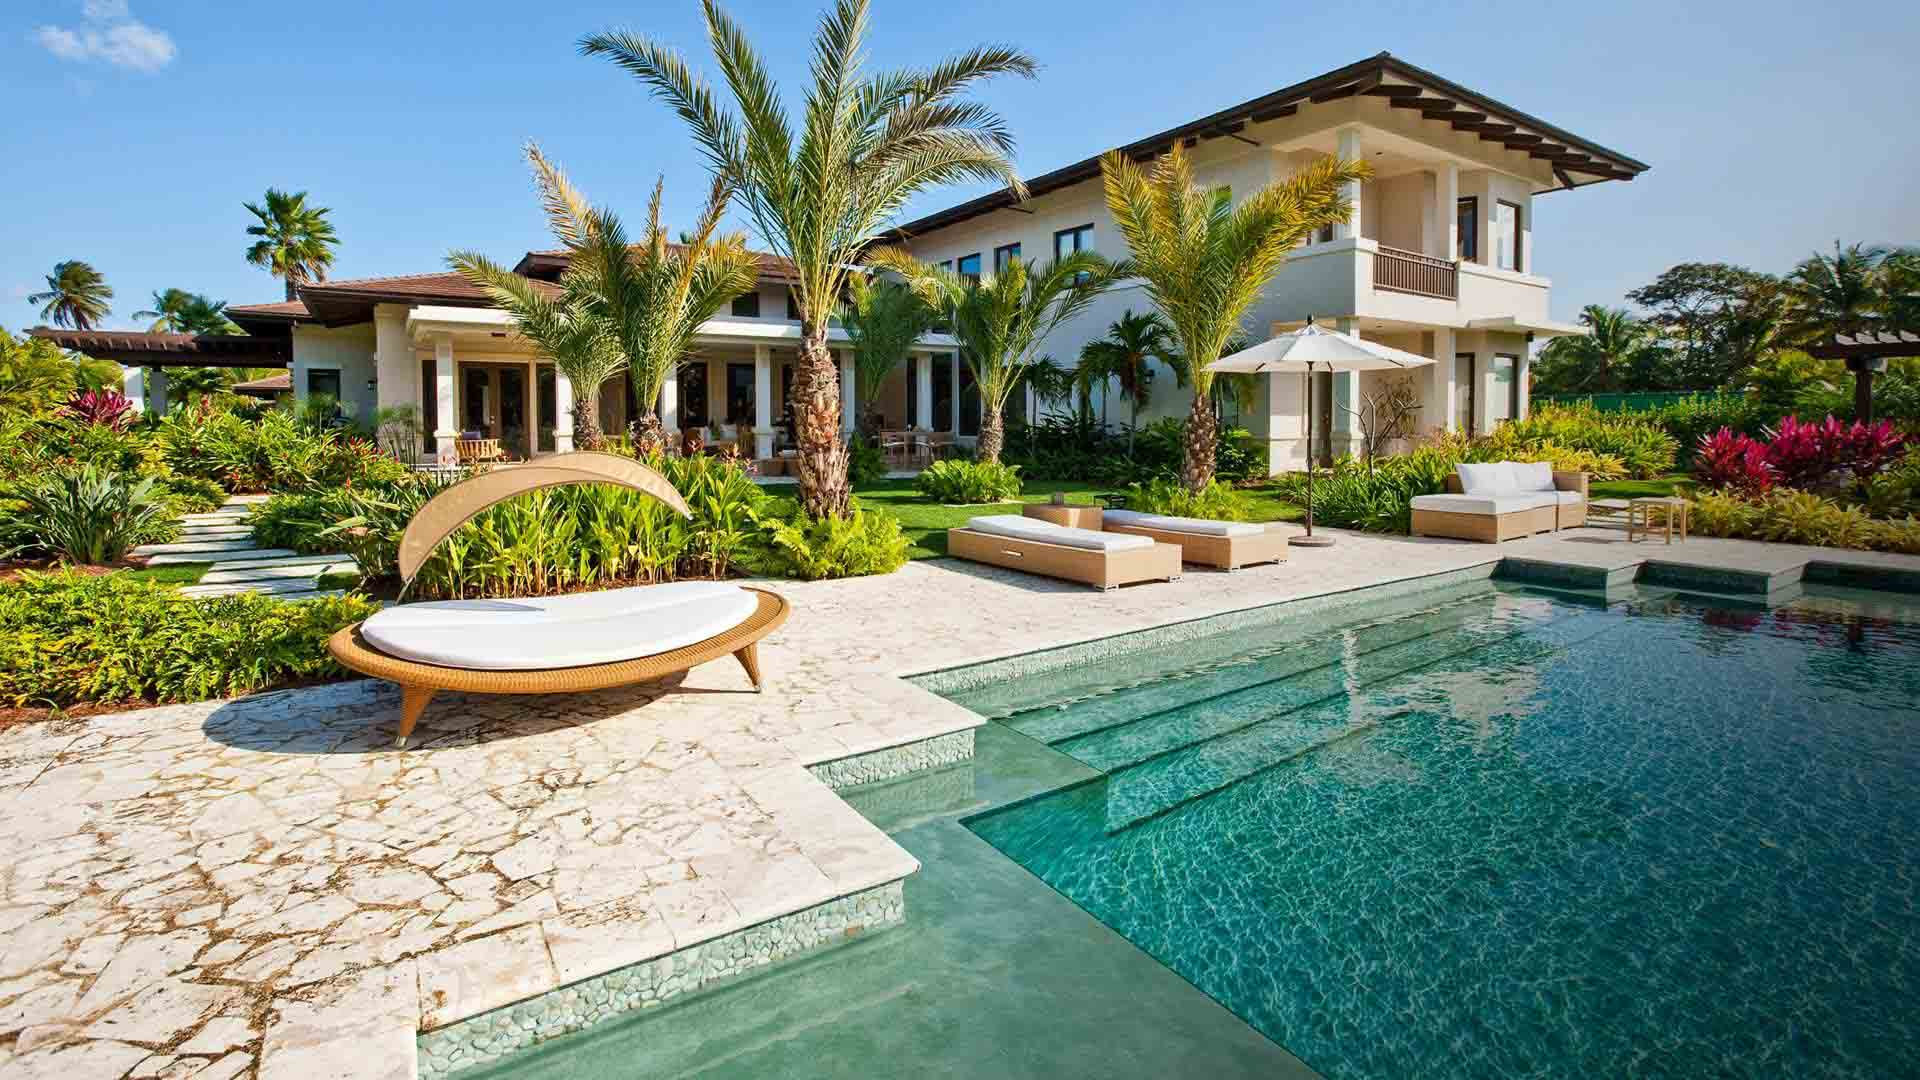 Chris Bastidas Beverly Hills Real Estate